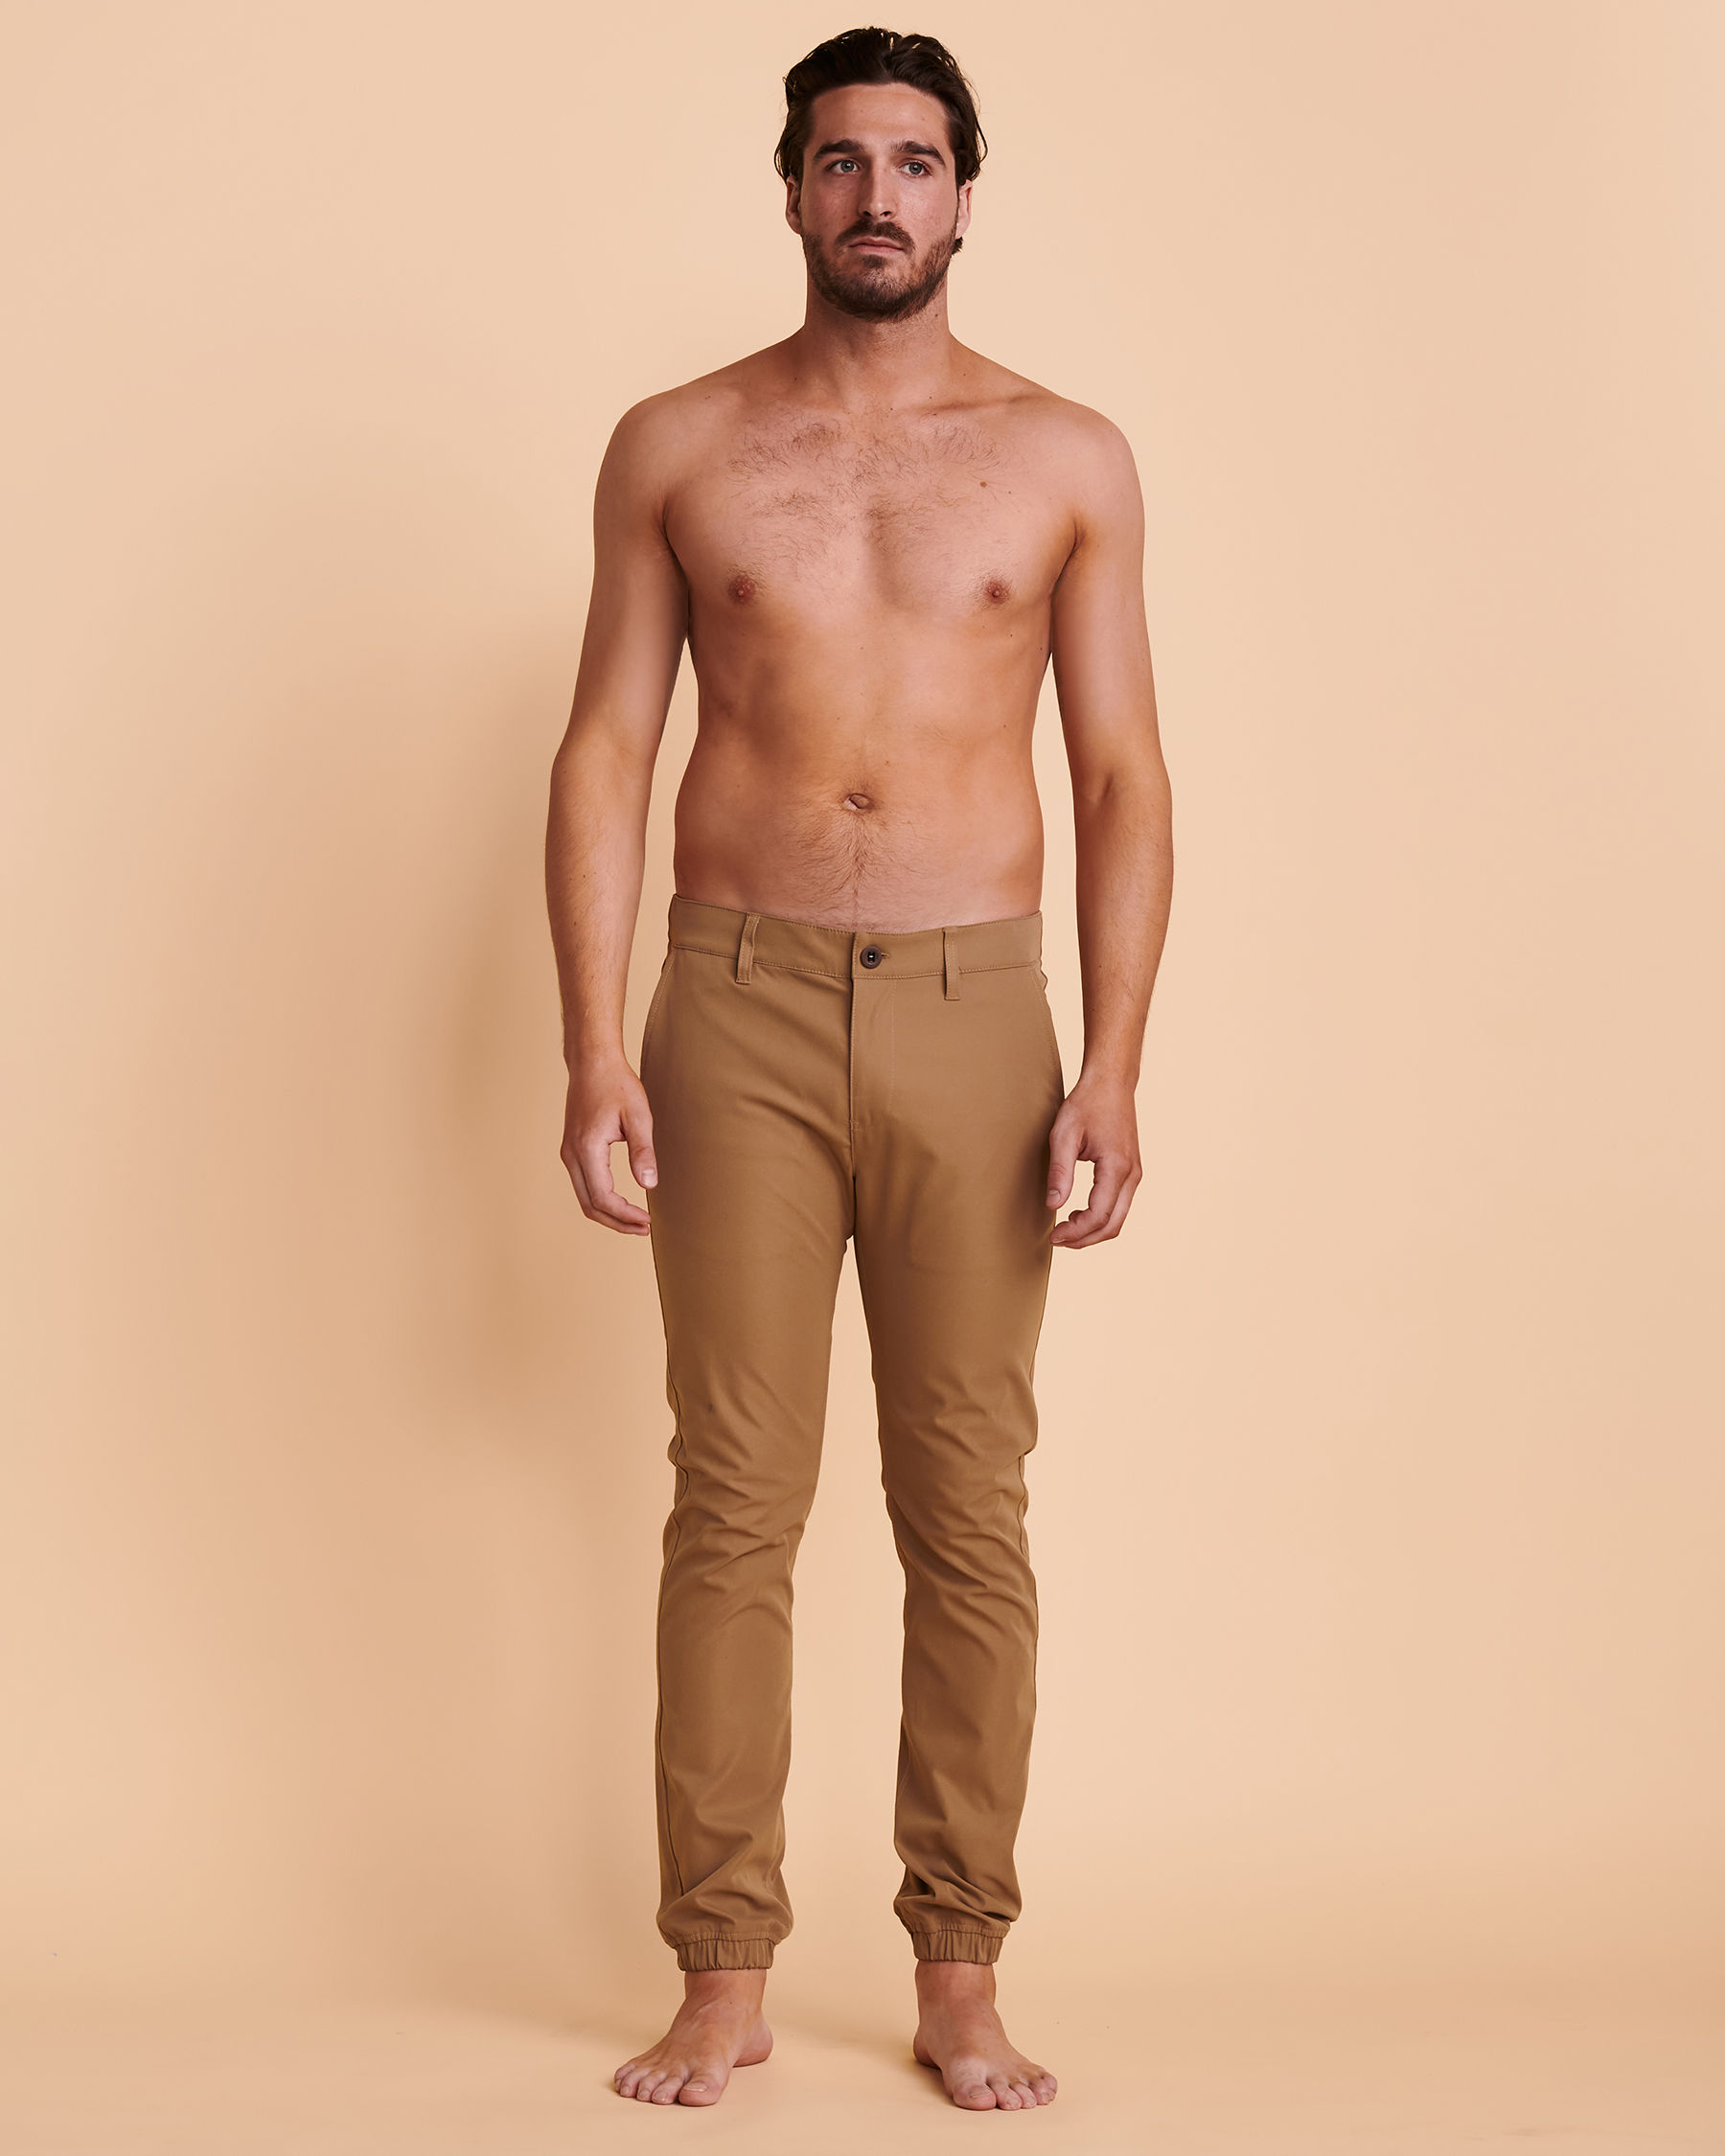 O'NEILL DONNIE Hybrid Pants Camel SP1109101C - View4